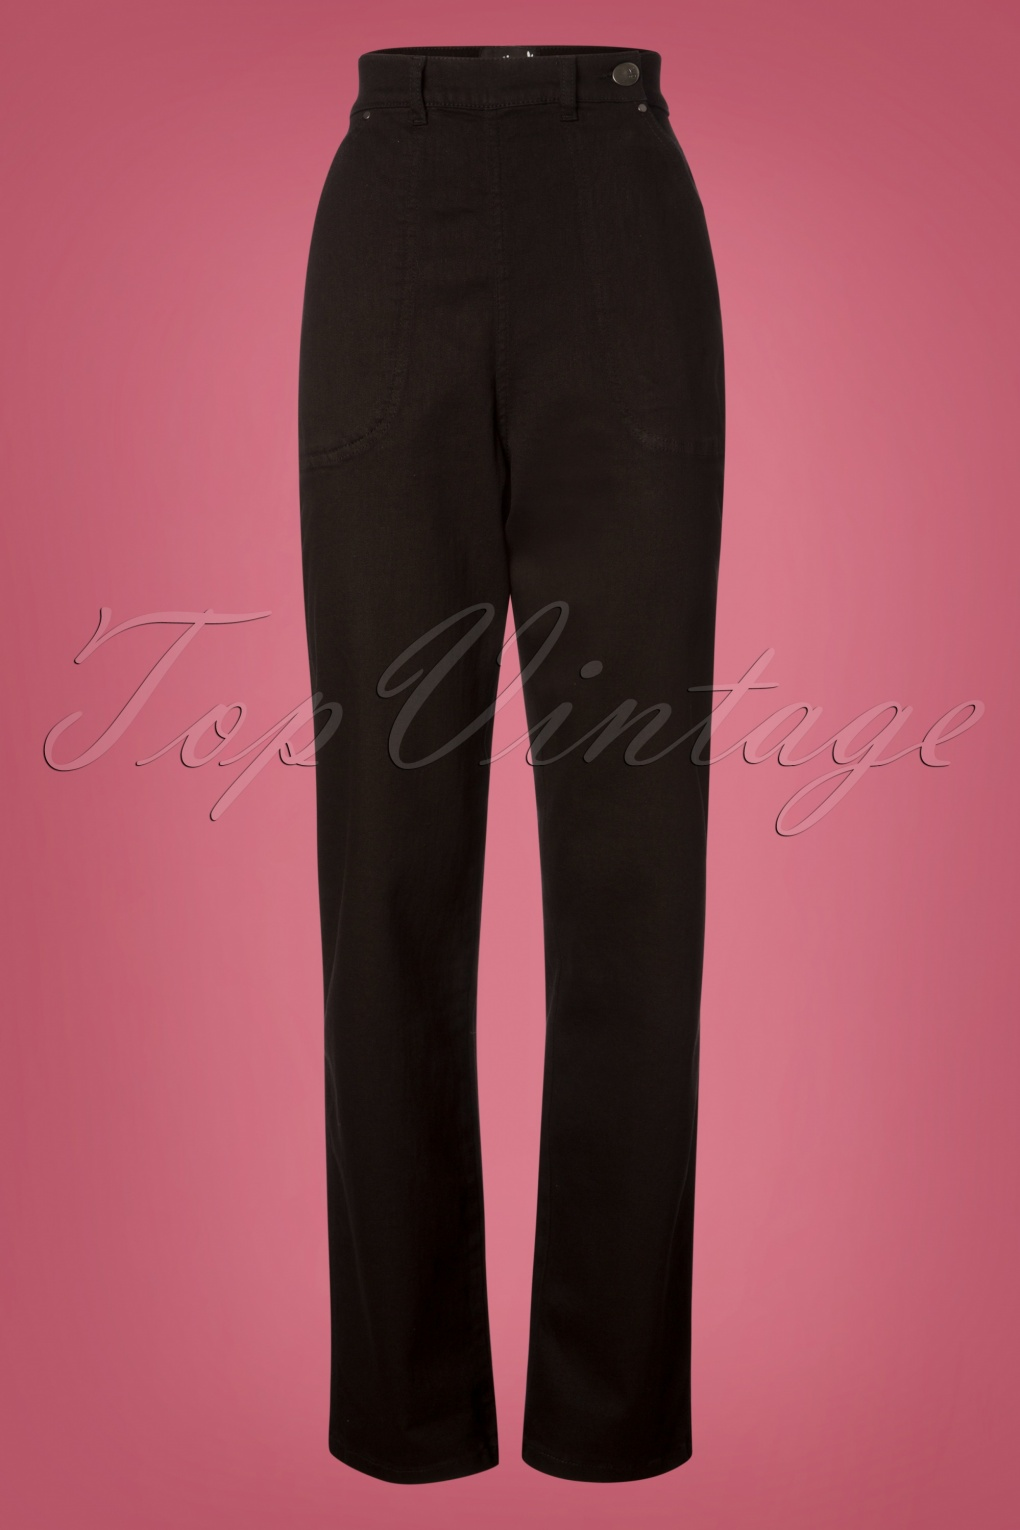 Vintage High Waisted Trousers, Sailor Pants, Jeans 50s Weston Jeans in Black £39.23 AT vintagedancer.com